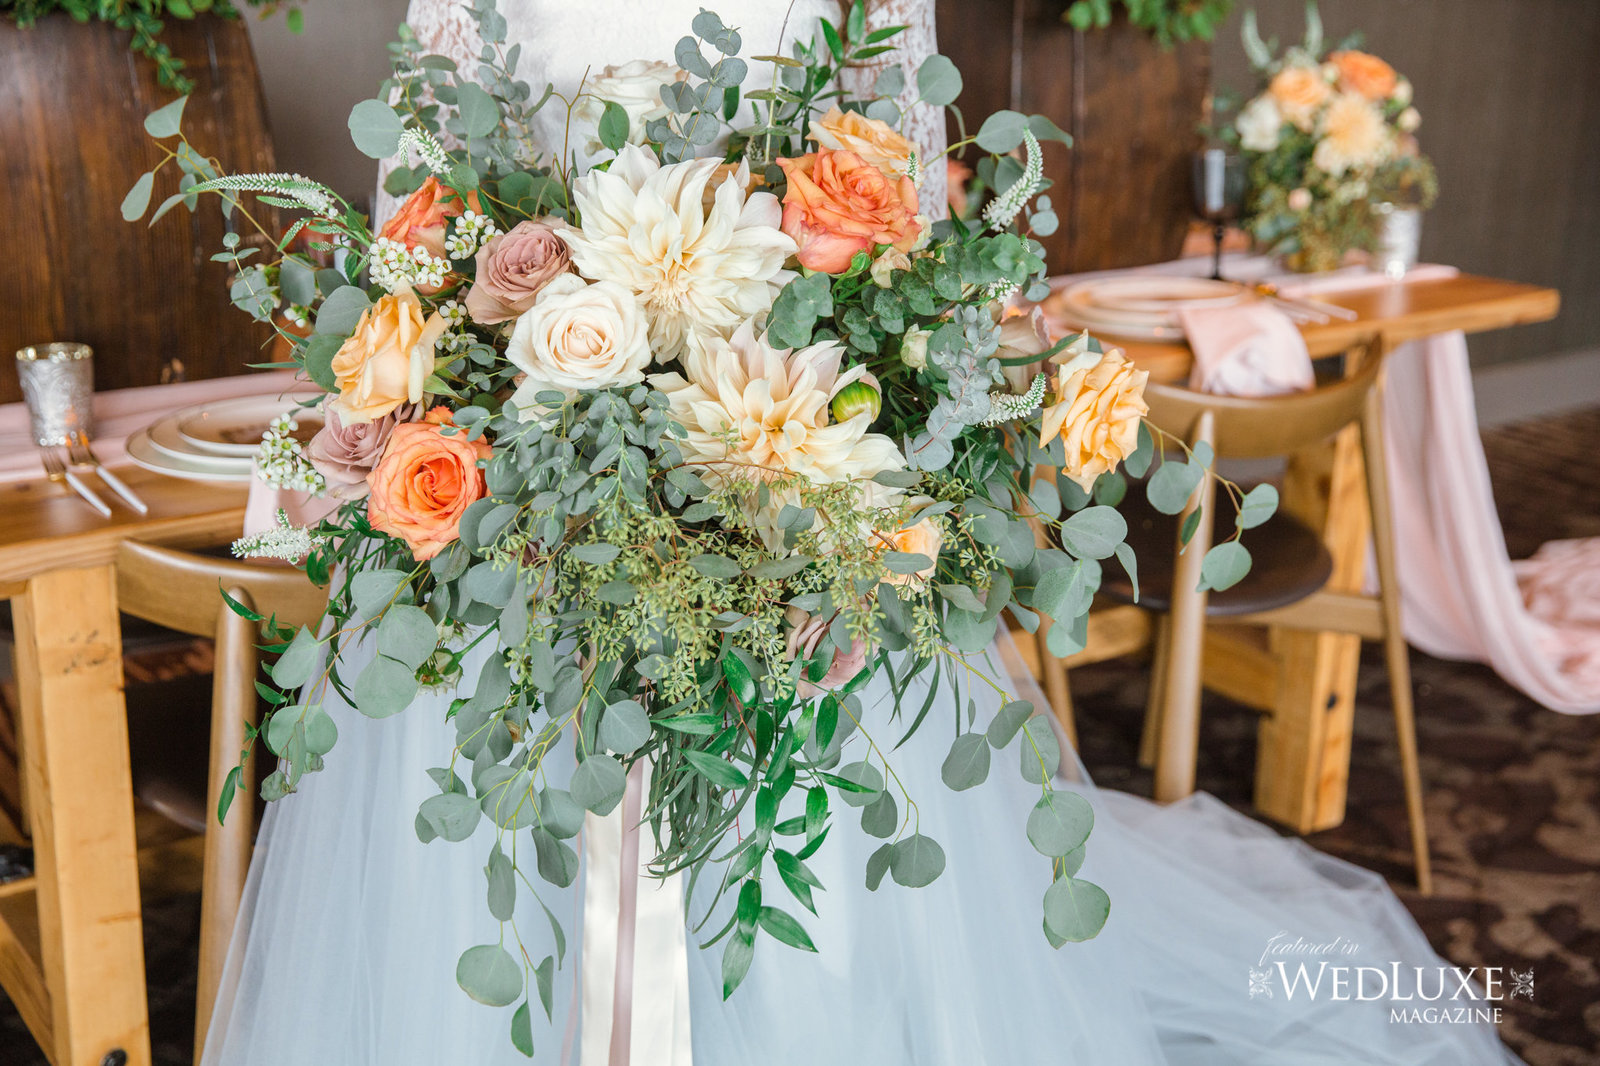 Styled Wedluxe Magazine Rustic Retreat bridal bouquet